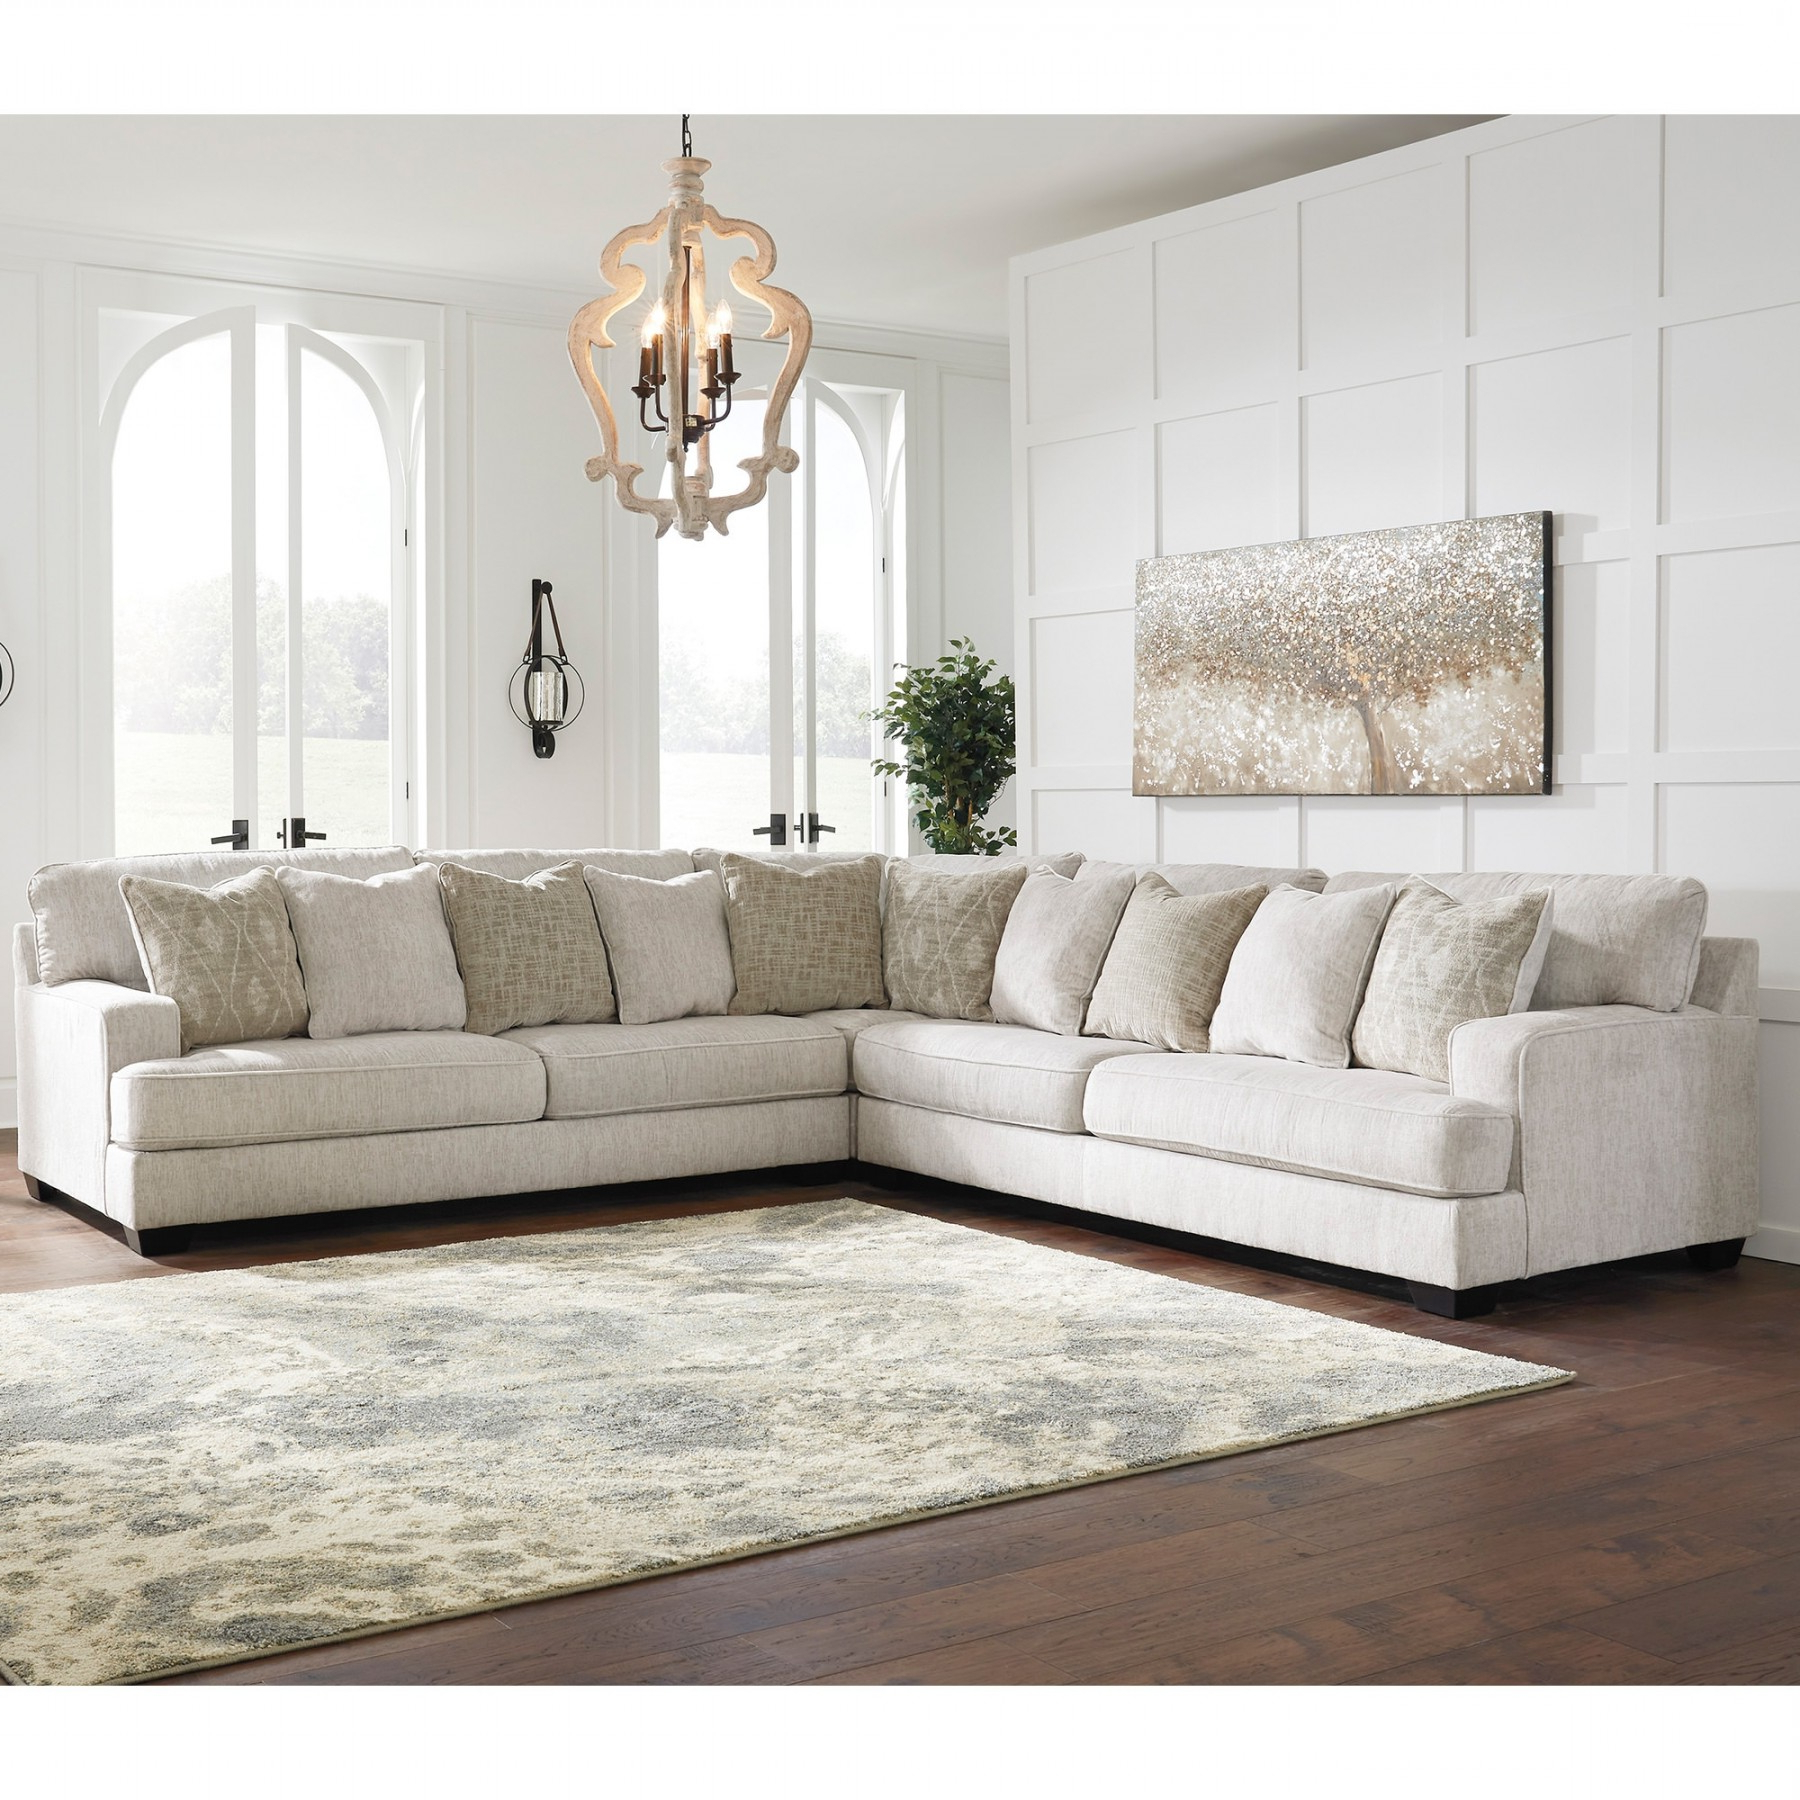 3Pc Polyfiber Sectional Sofas For Most Current Rawcliffe Parchment 3 Piece Sectional – Sectionals (View 19 of 25)